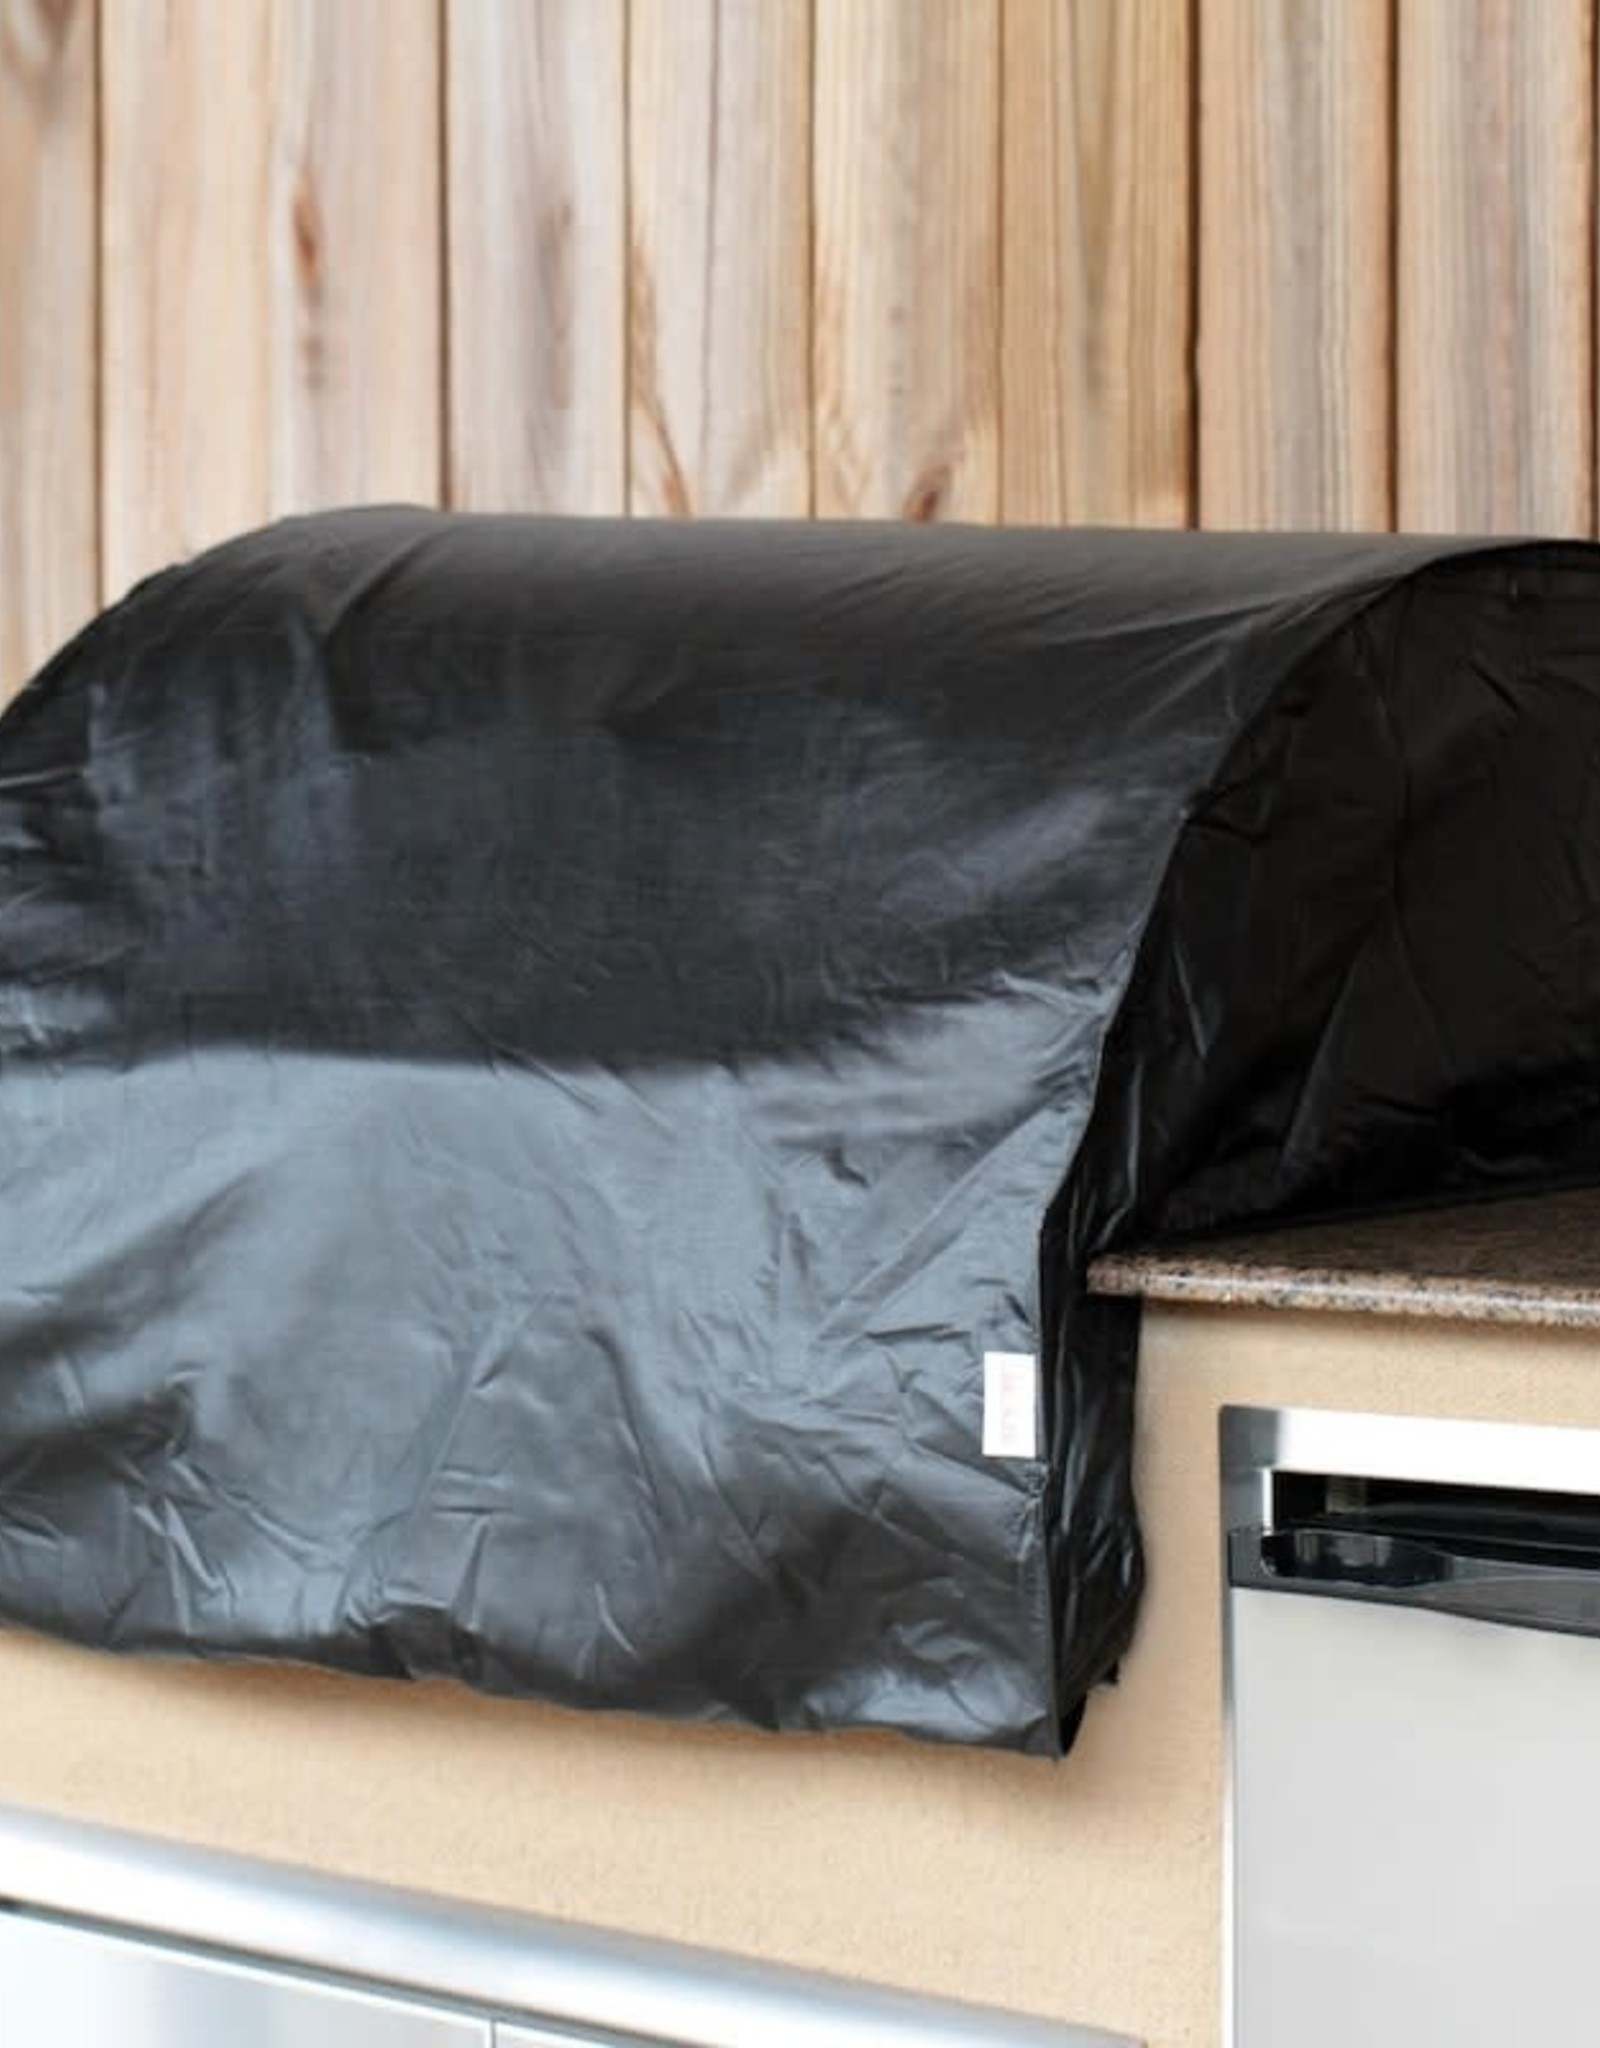 Blaze Outdoor Products Blaze Grill Cover For Blaze 3-Burner Built-In Grills - 3BICV